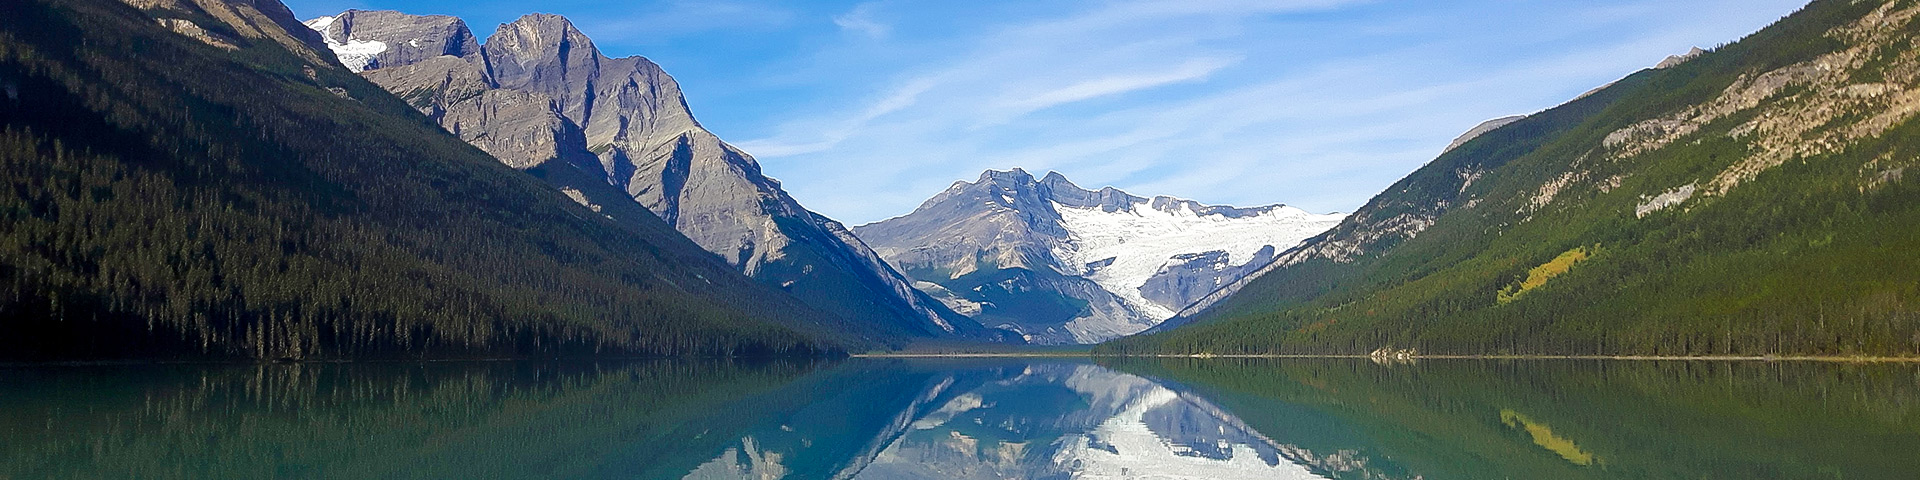 Panorama from Glacier Lake backpacking trail in Banff National Park